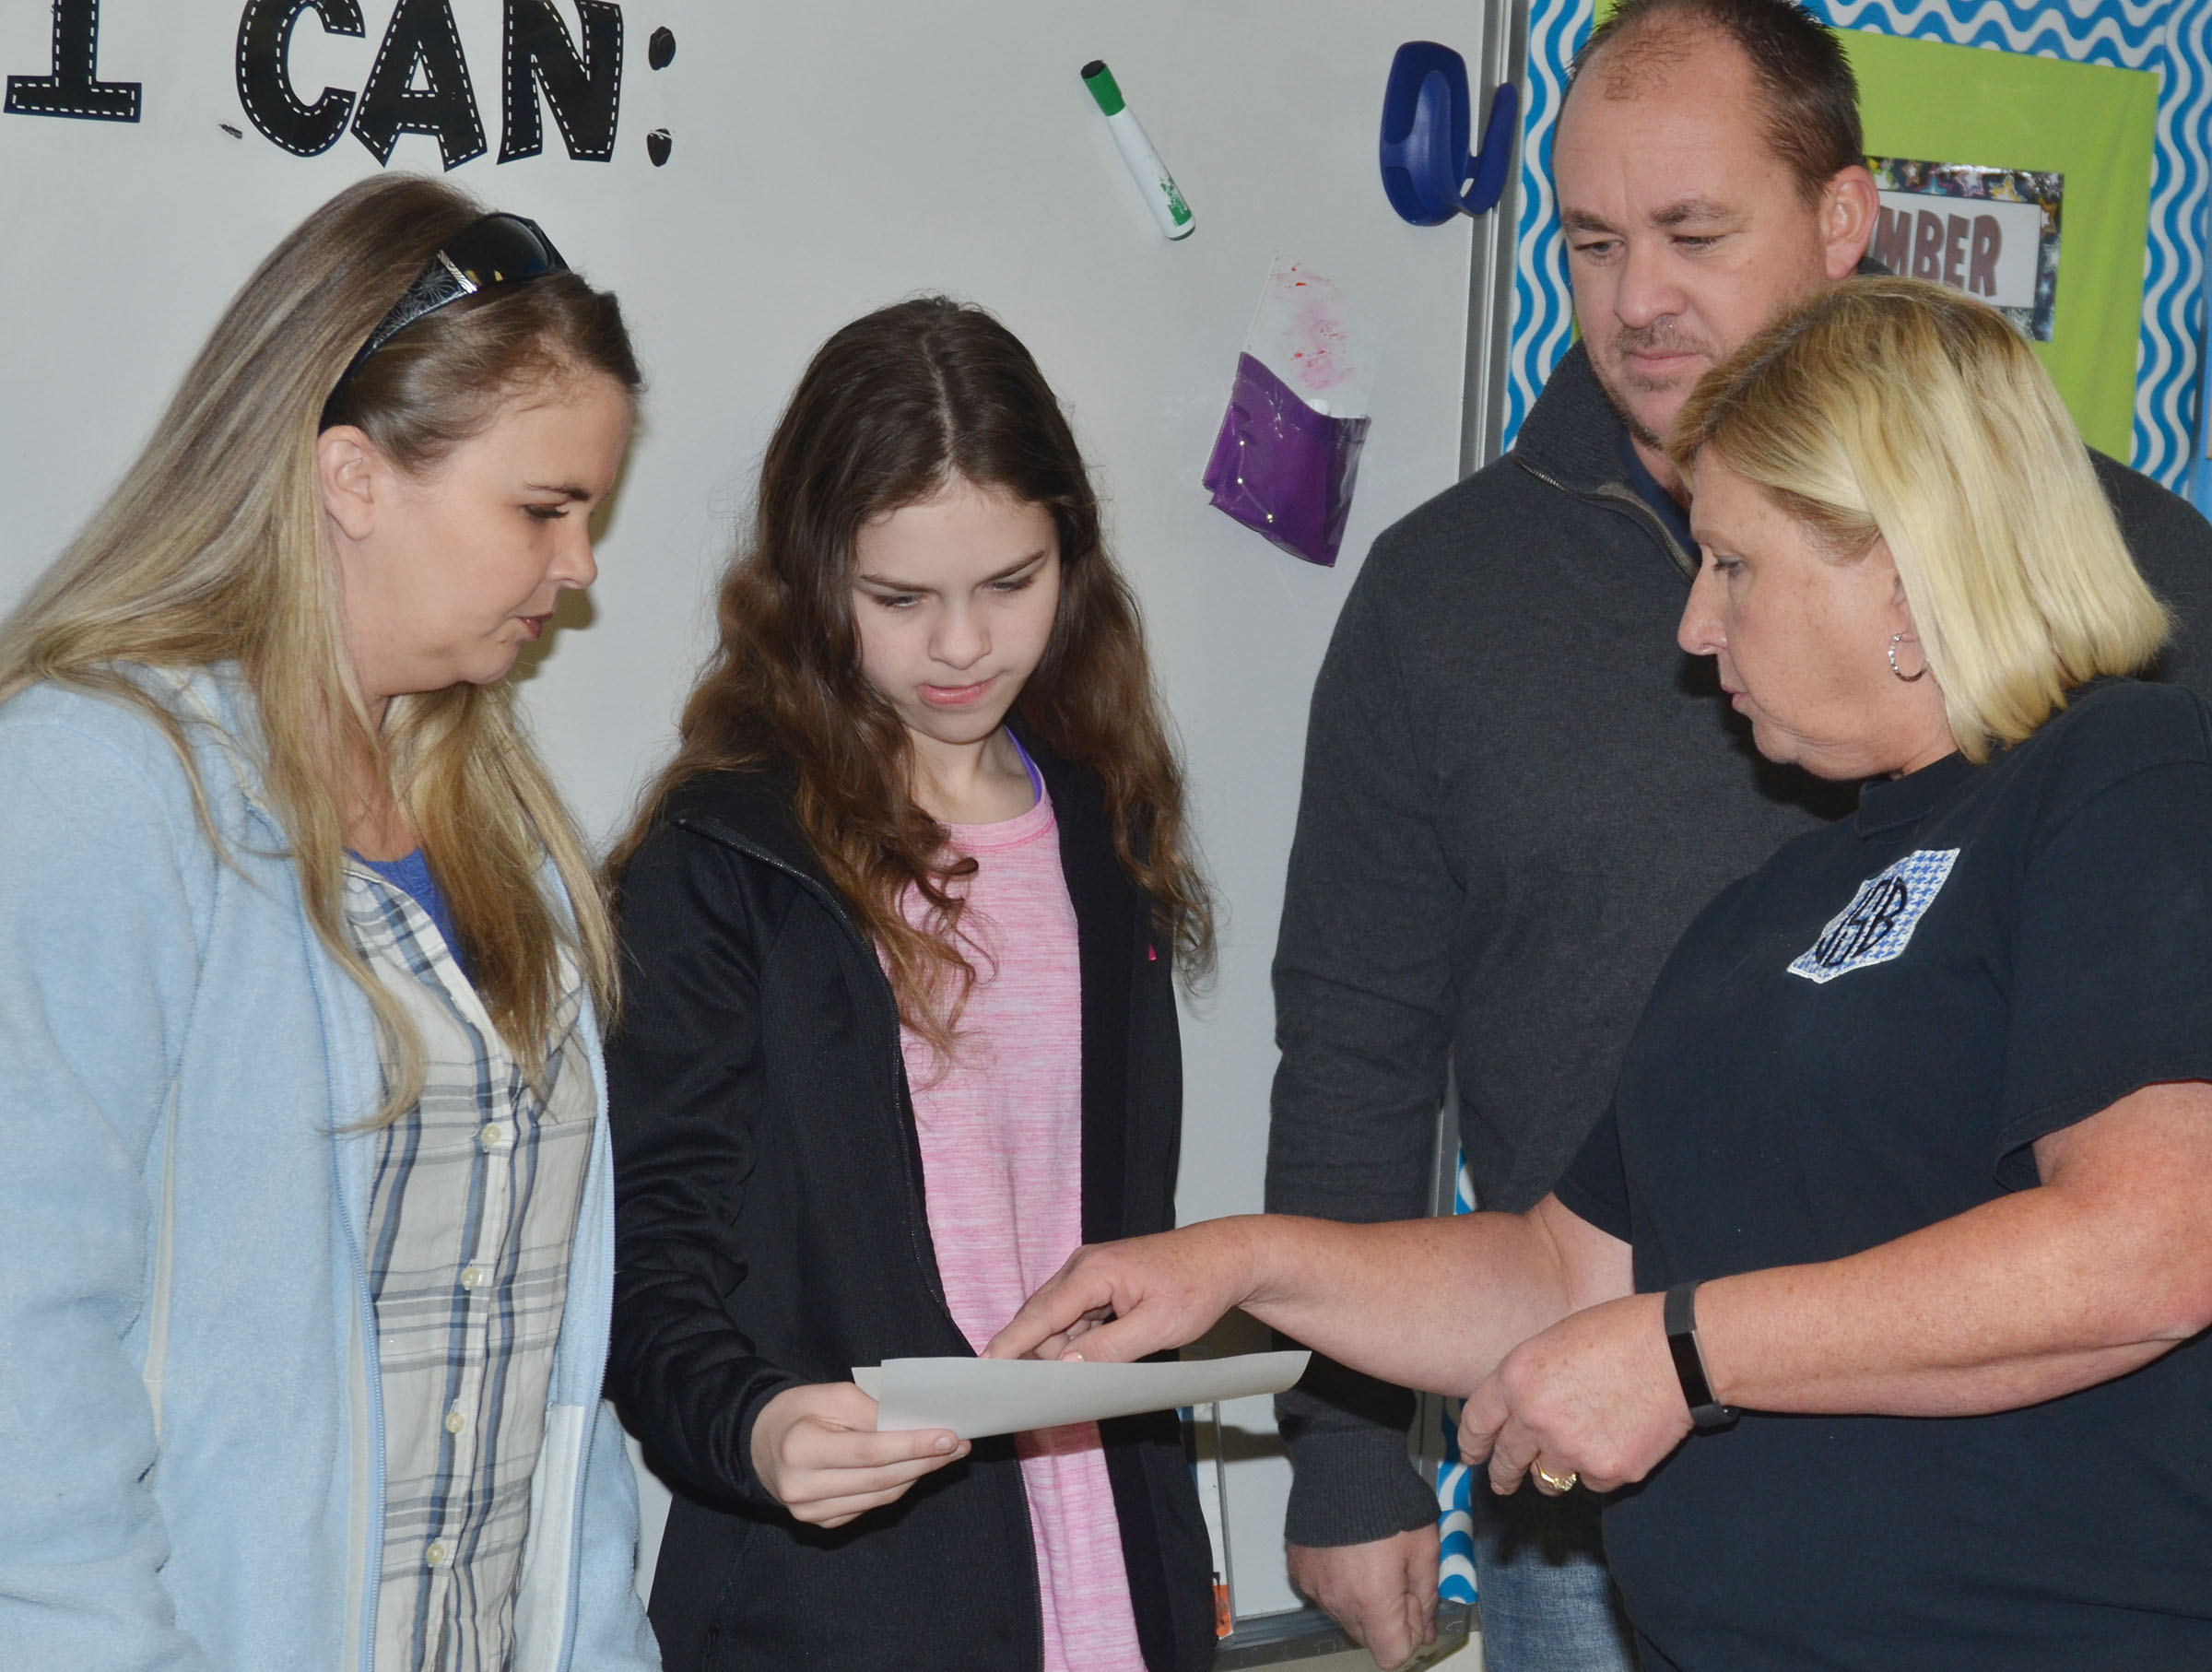 CMS sixth-grader Karlee Rakel looks at her grades with her parents, Eddie and Jaclyn, and one of her teachers, Jan Speer.